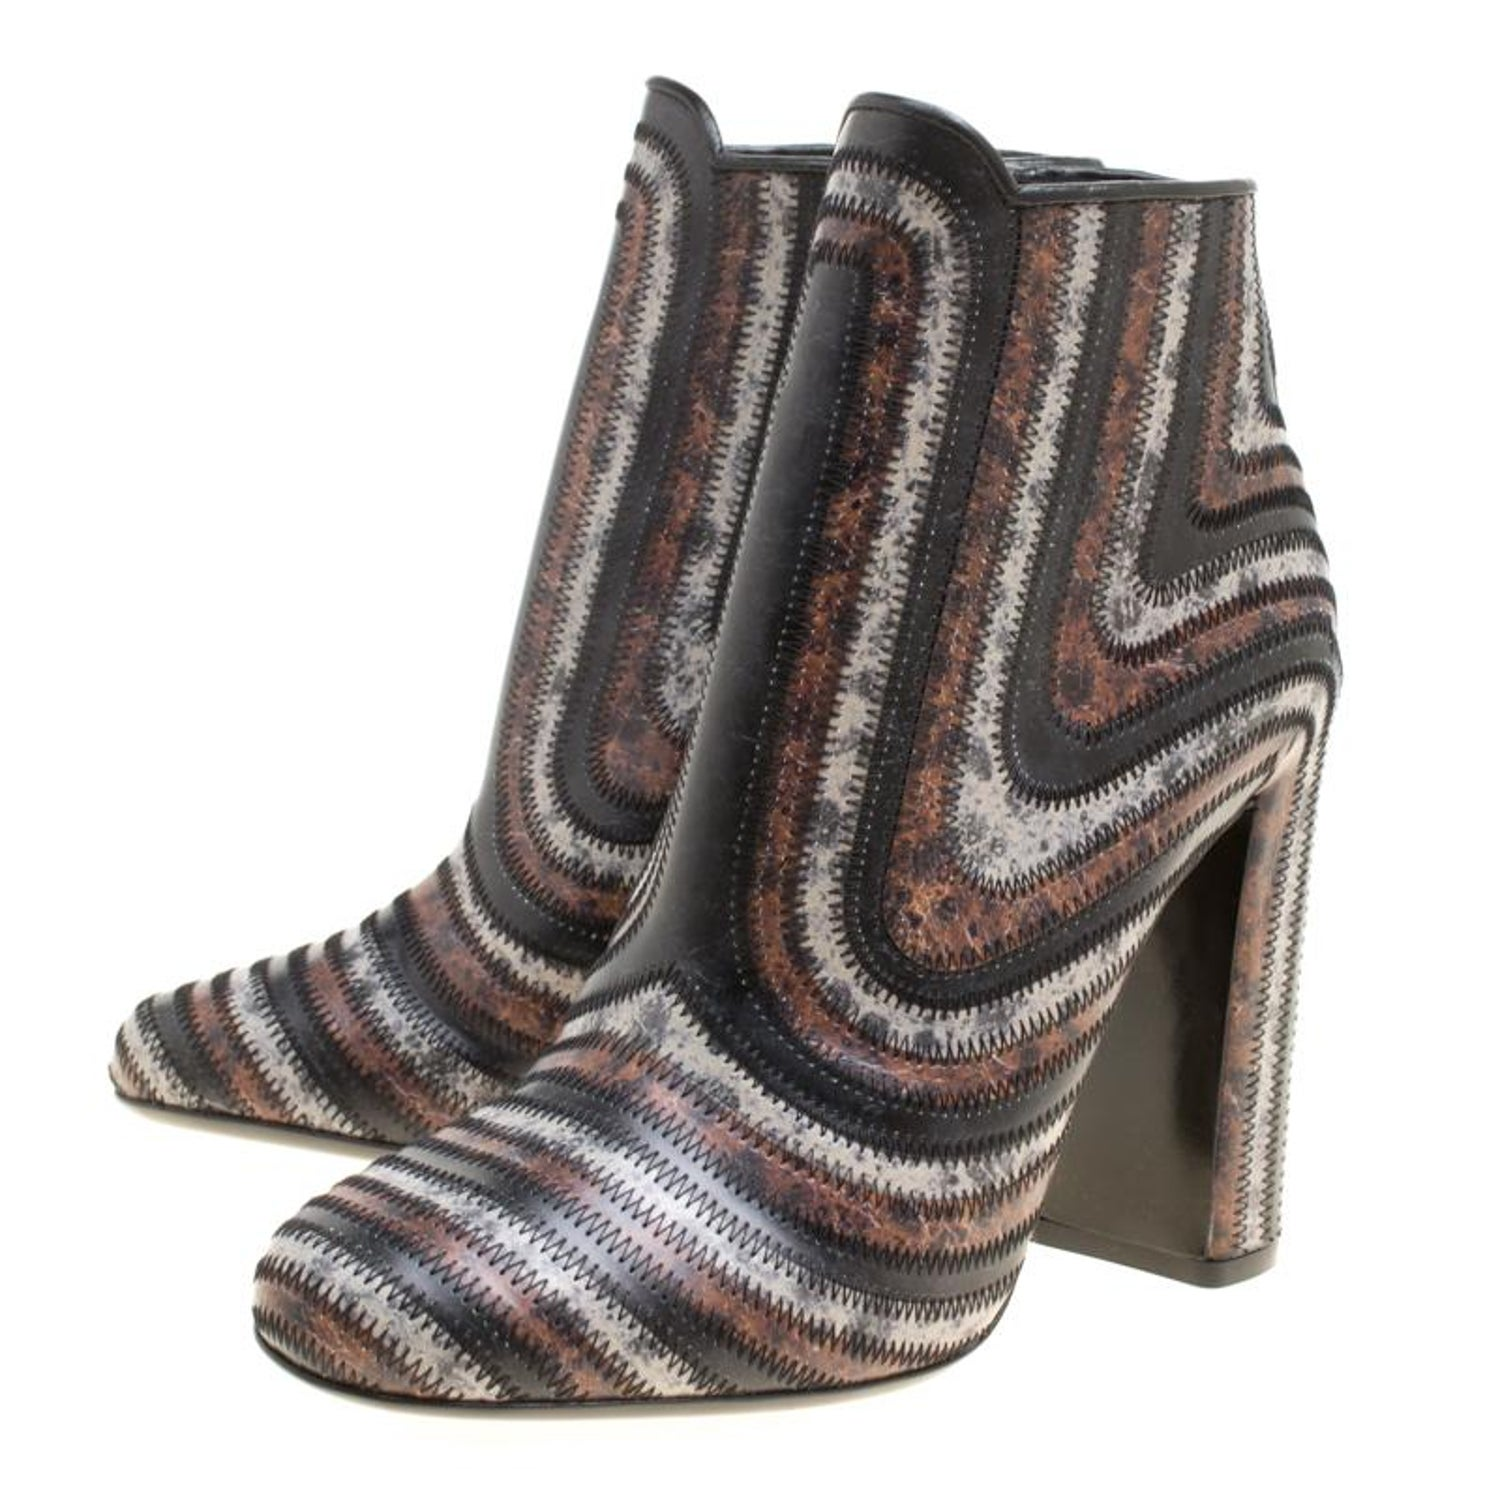 6fadb467be92 Salvatore Ferragamo Multicolor Leather Feeling Zig Zag Block Heel Ankle  Boots Si For Sale at 1stdibs